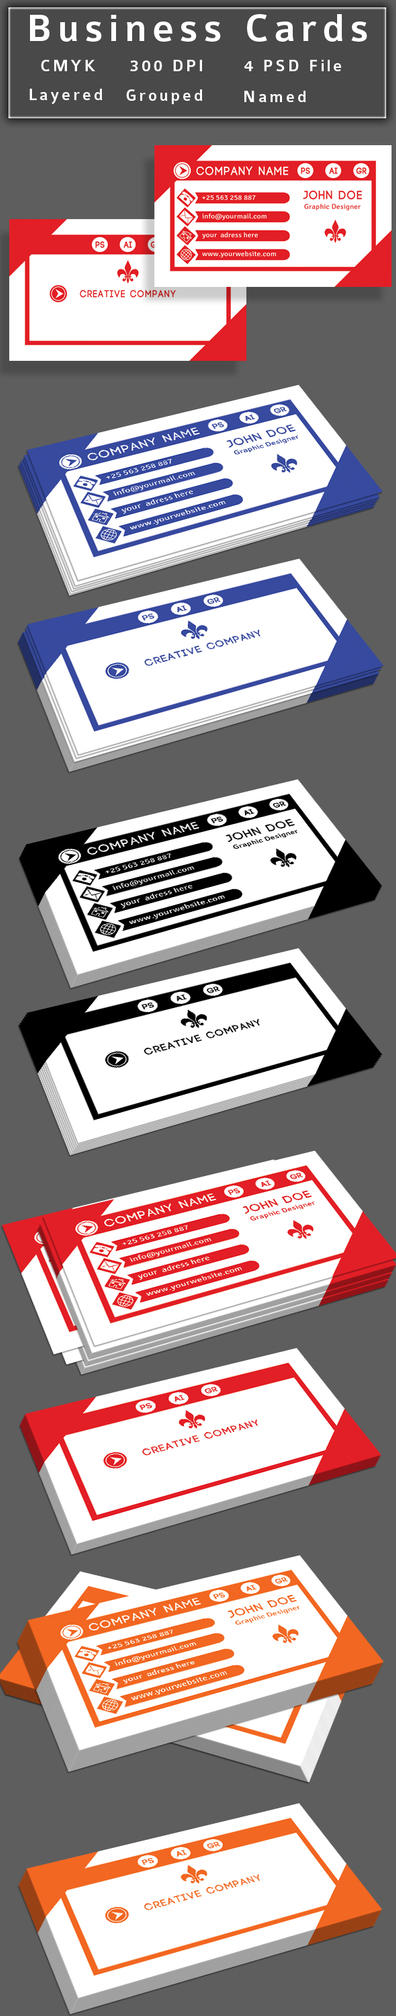 Free professional Business Card by mdbulbulahmed